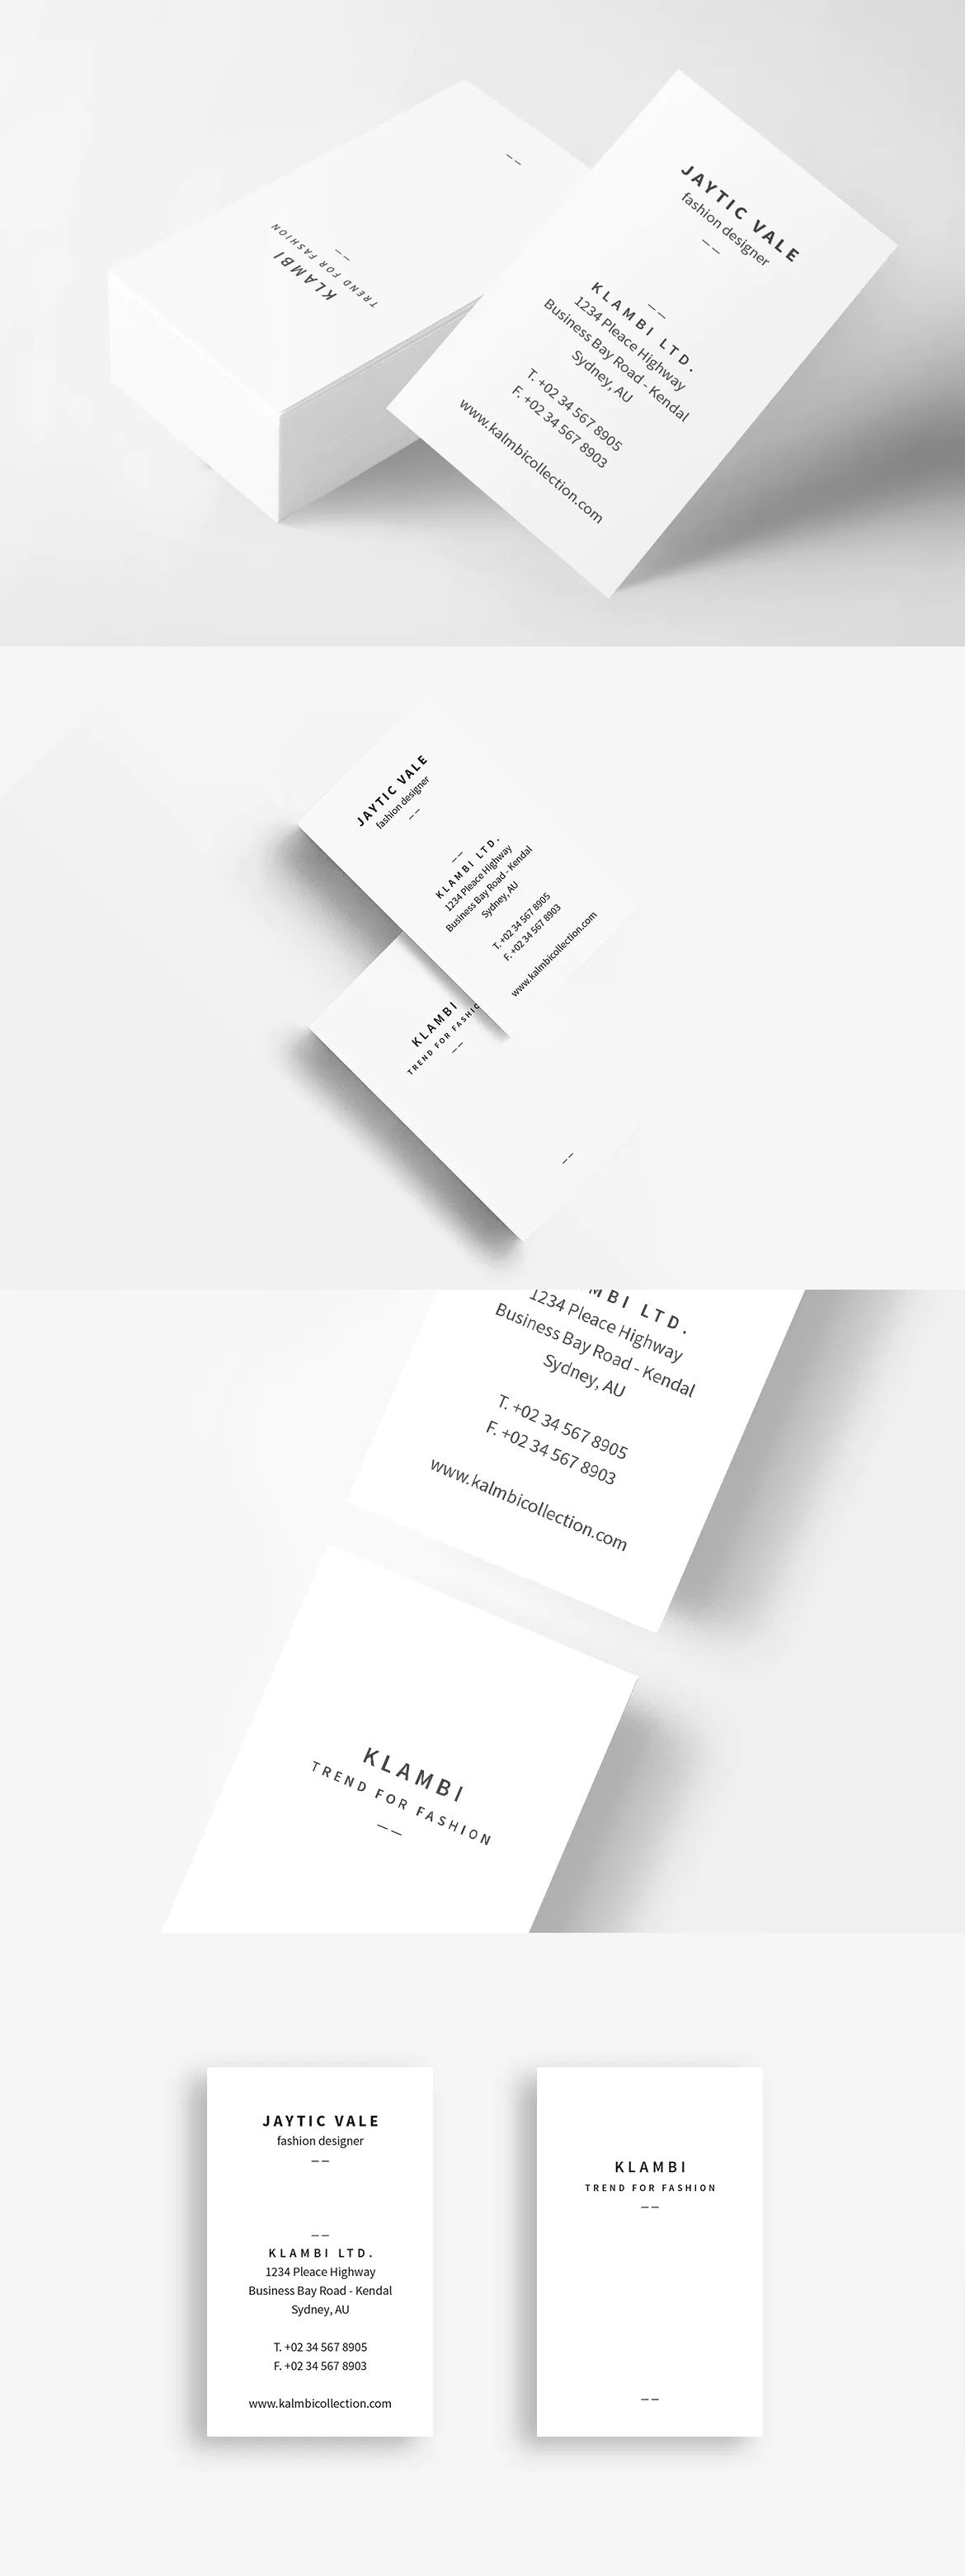 Business card template indesign indd business card templates business card template indesign indd flashek Images